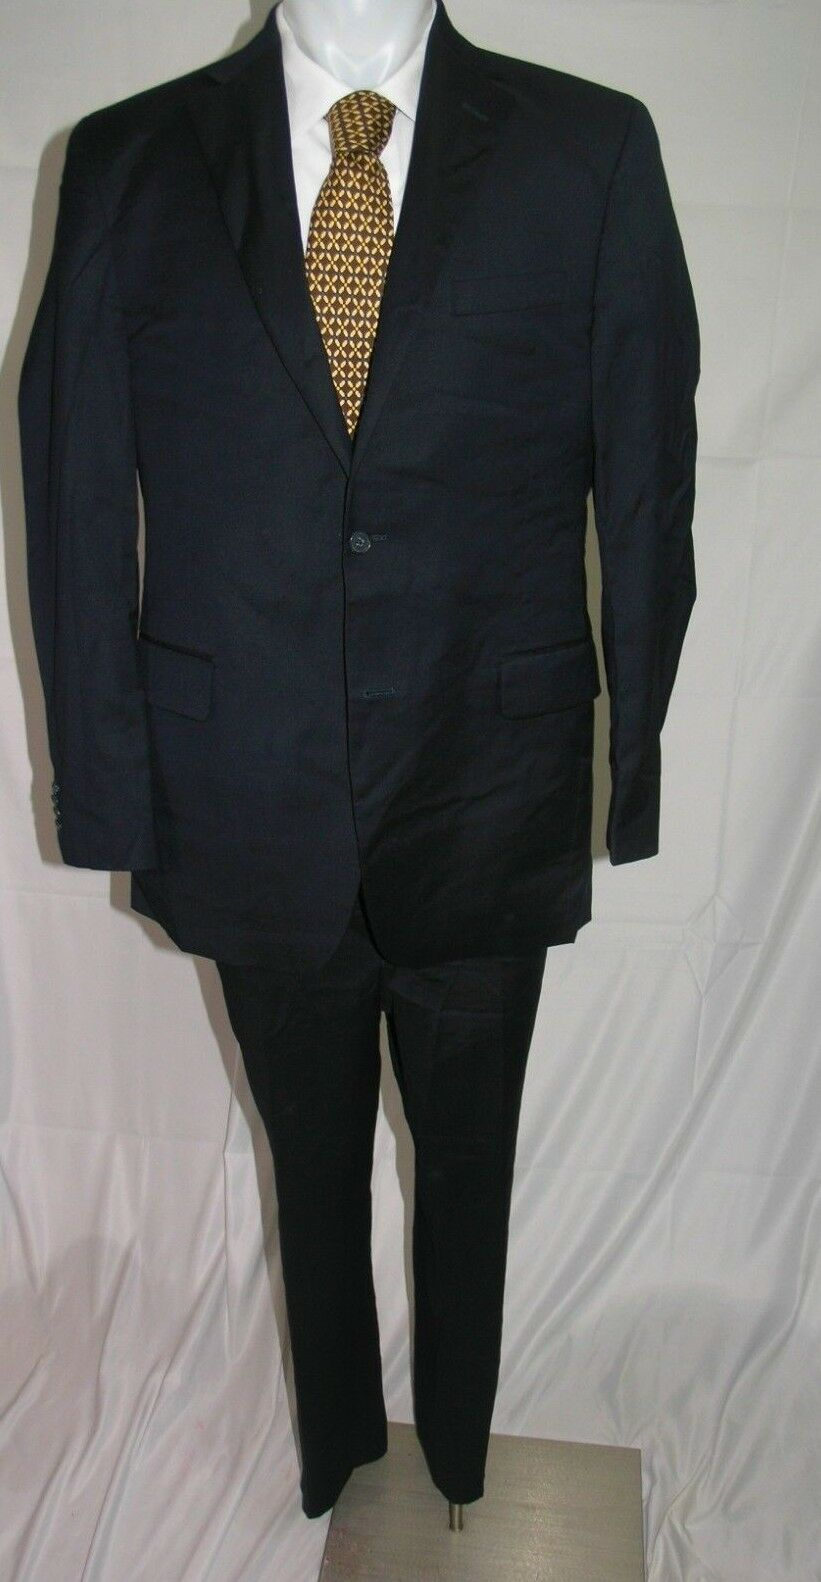 Barneys New York Lgold Piana Super 120's Two Button Flat Front Suit 42 L 36 x 30